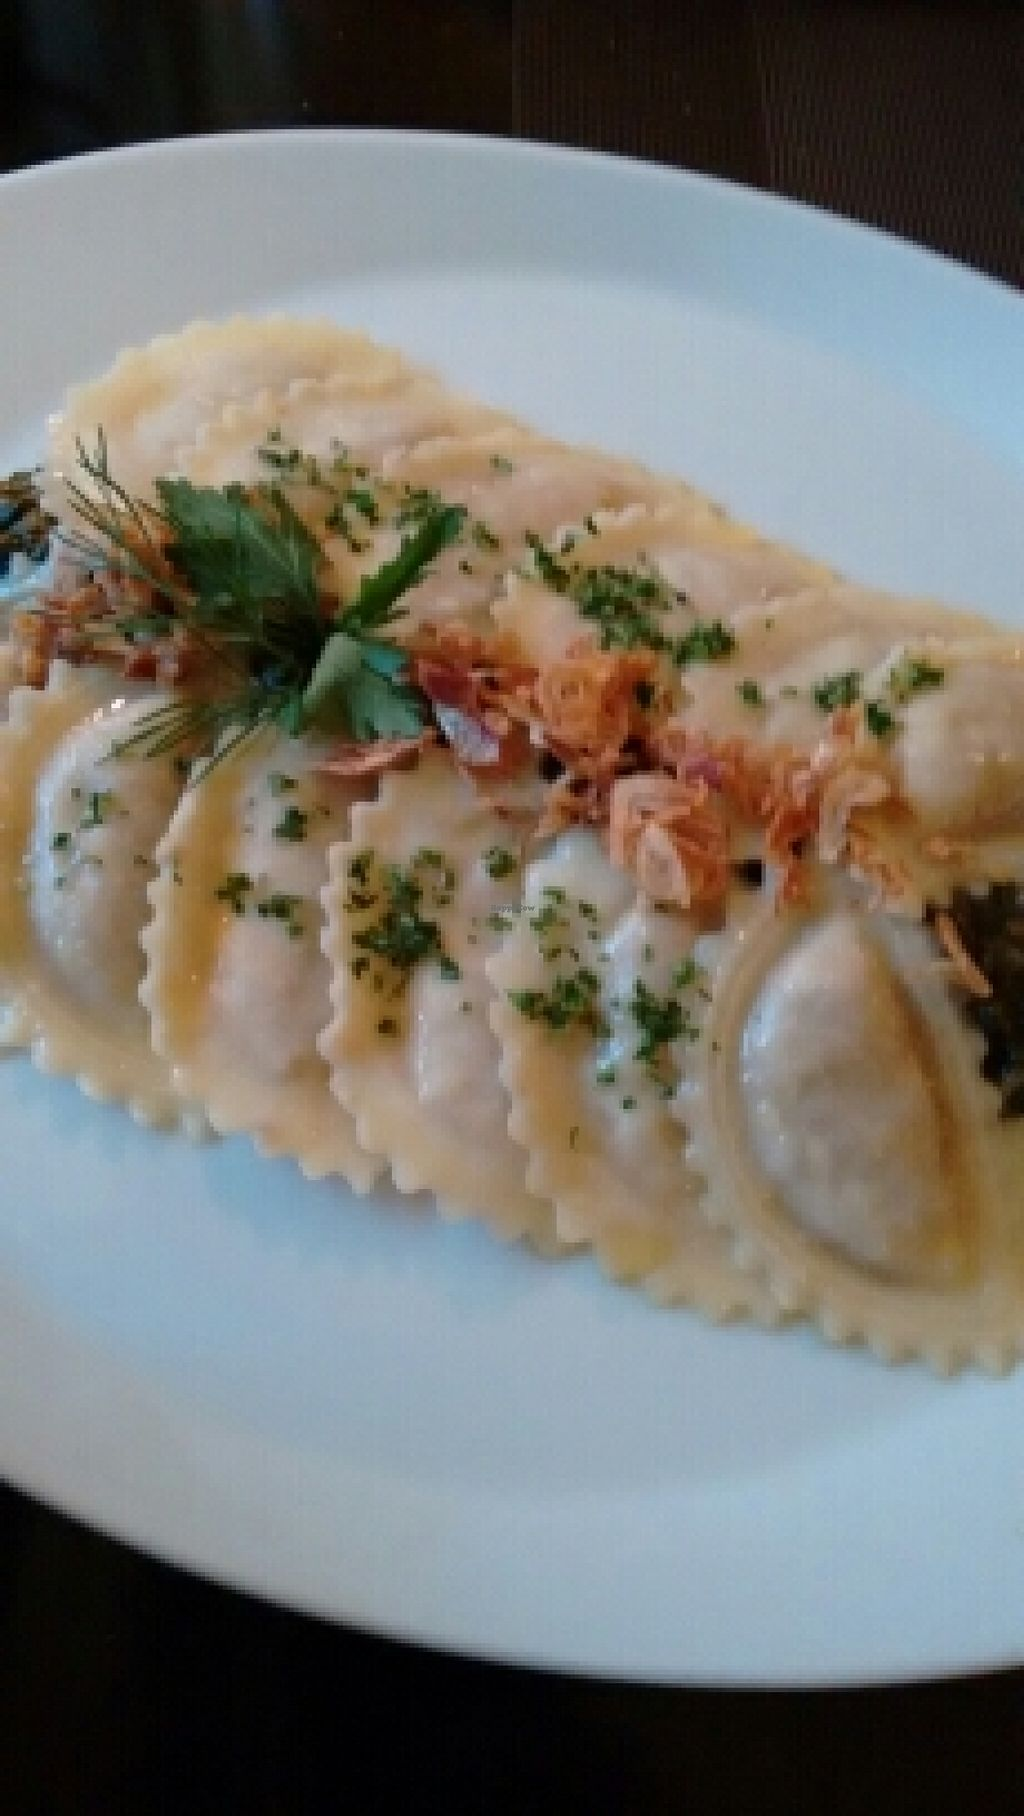 "Photo of Vaust Braugaststatte  by <a href=""/members/profile/craigmc"">craigmc</a> <br/>seitan ravioli  <br/> April 2, 2016  - <a href='/contact/abuse/image/32229/142323'>Report</a>"